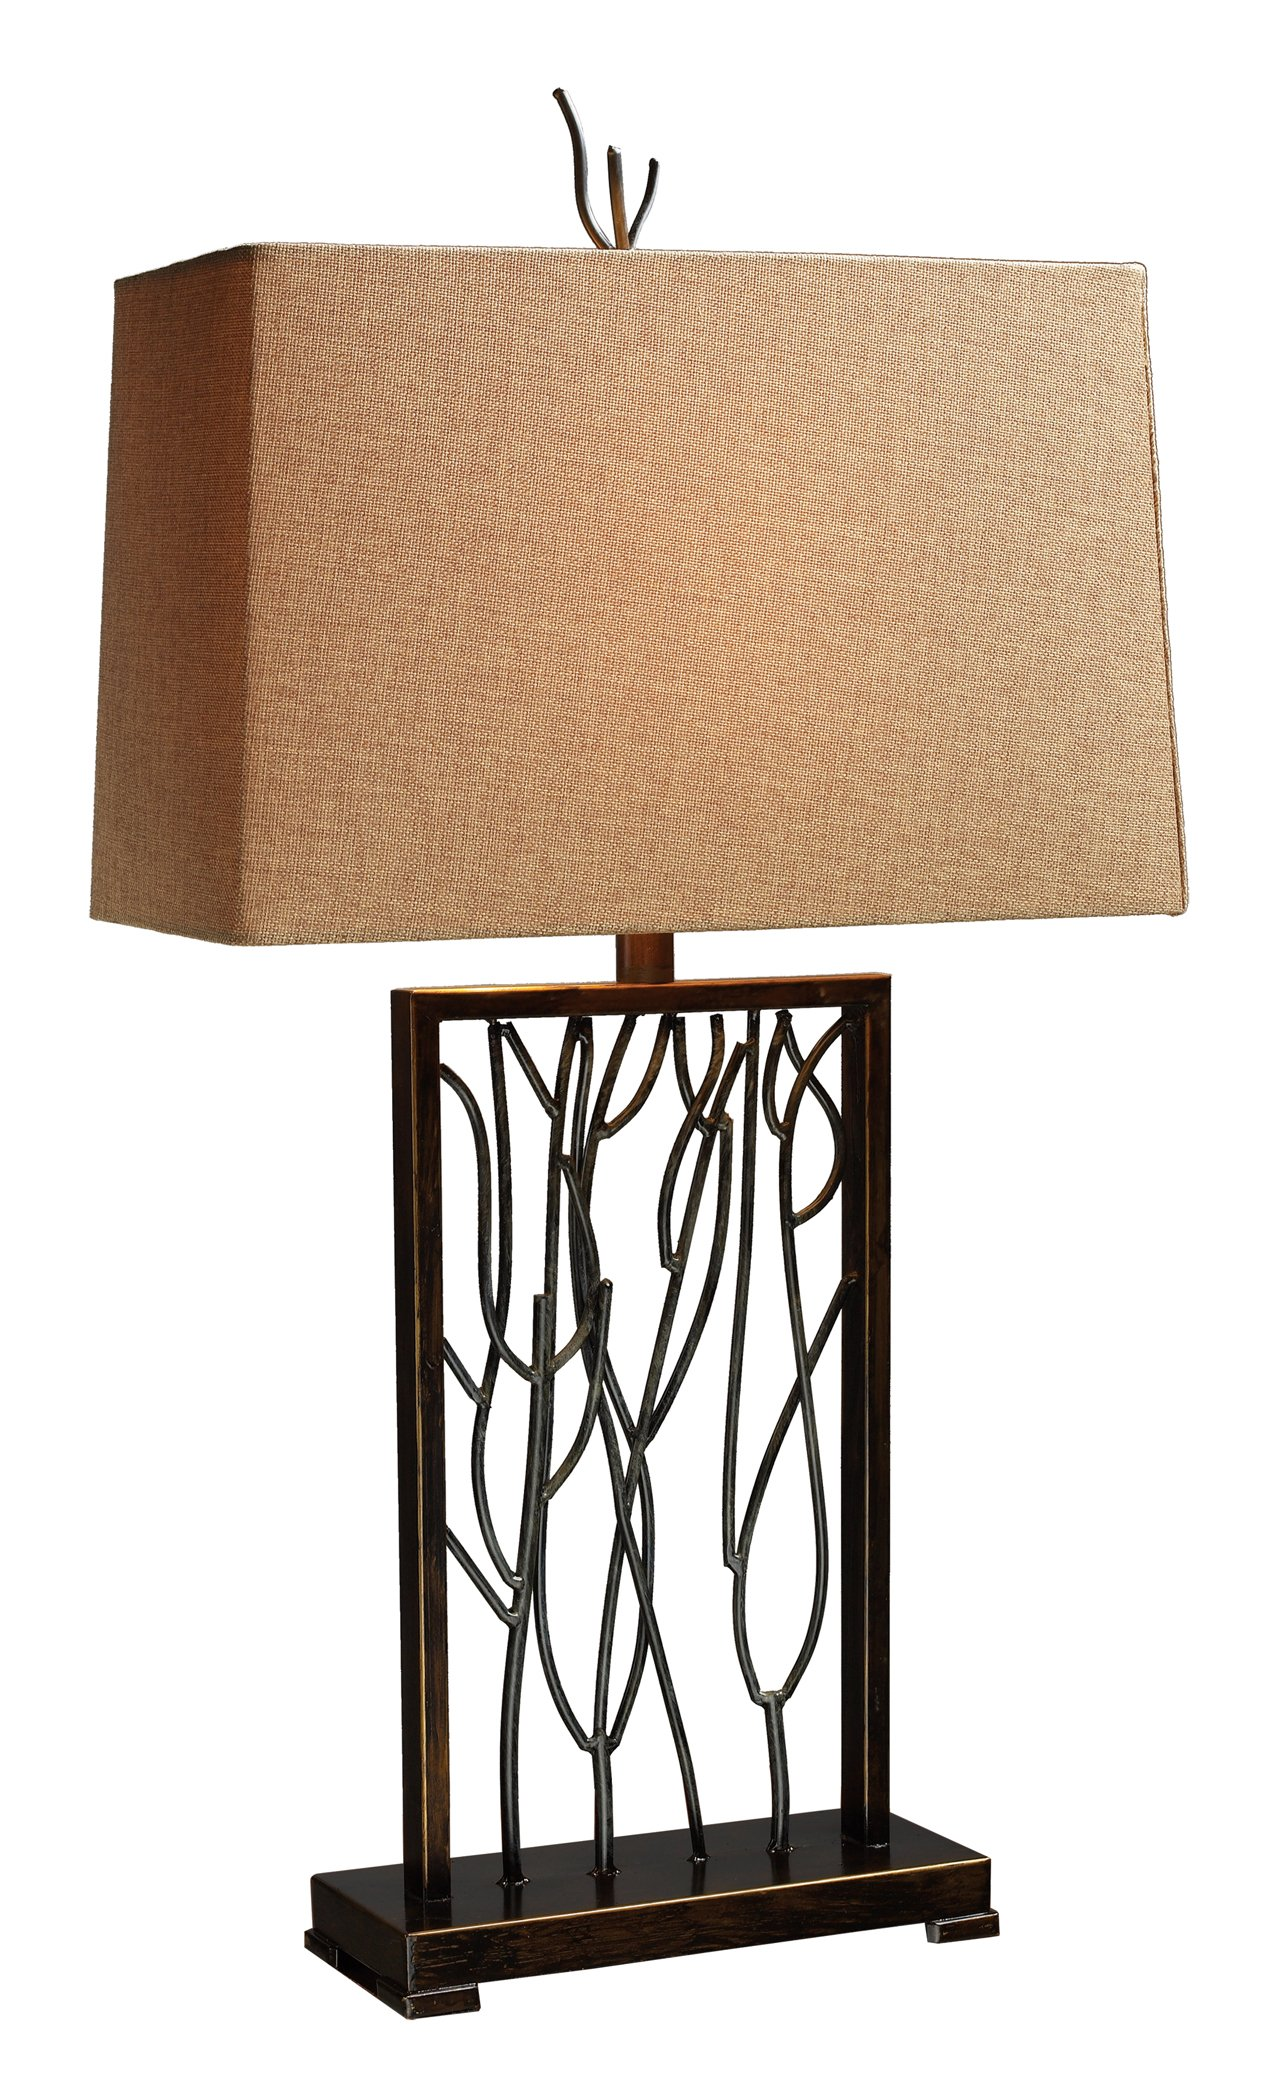 Dimond D1518 Belvior Park Table Lamp, Aria Bronze and Iron by Dimond Lighting